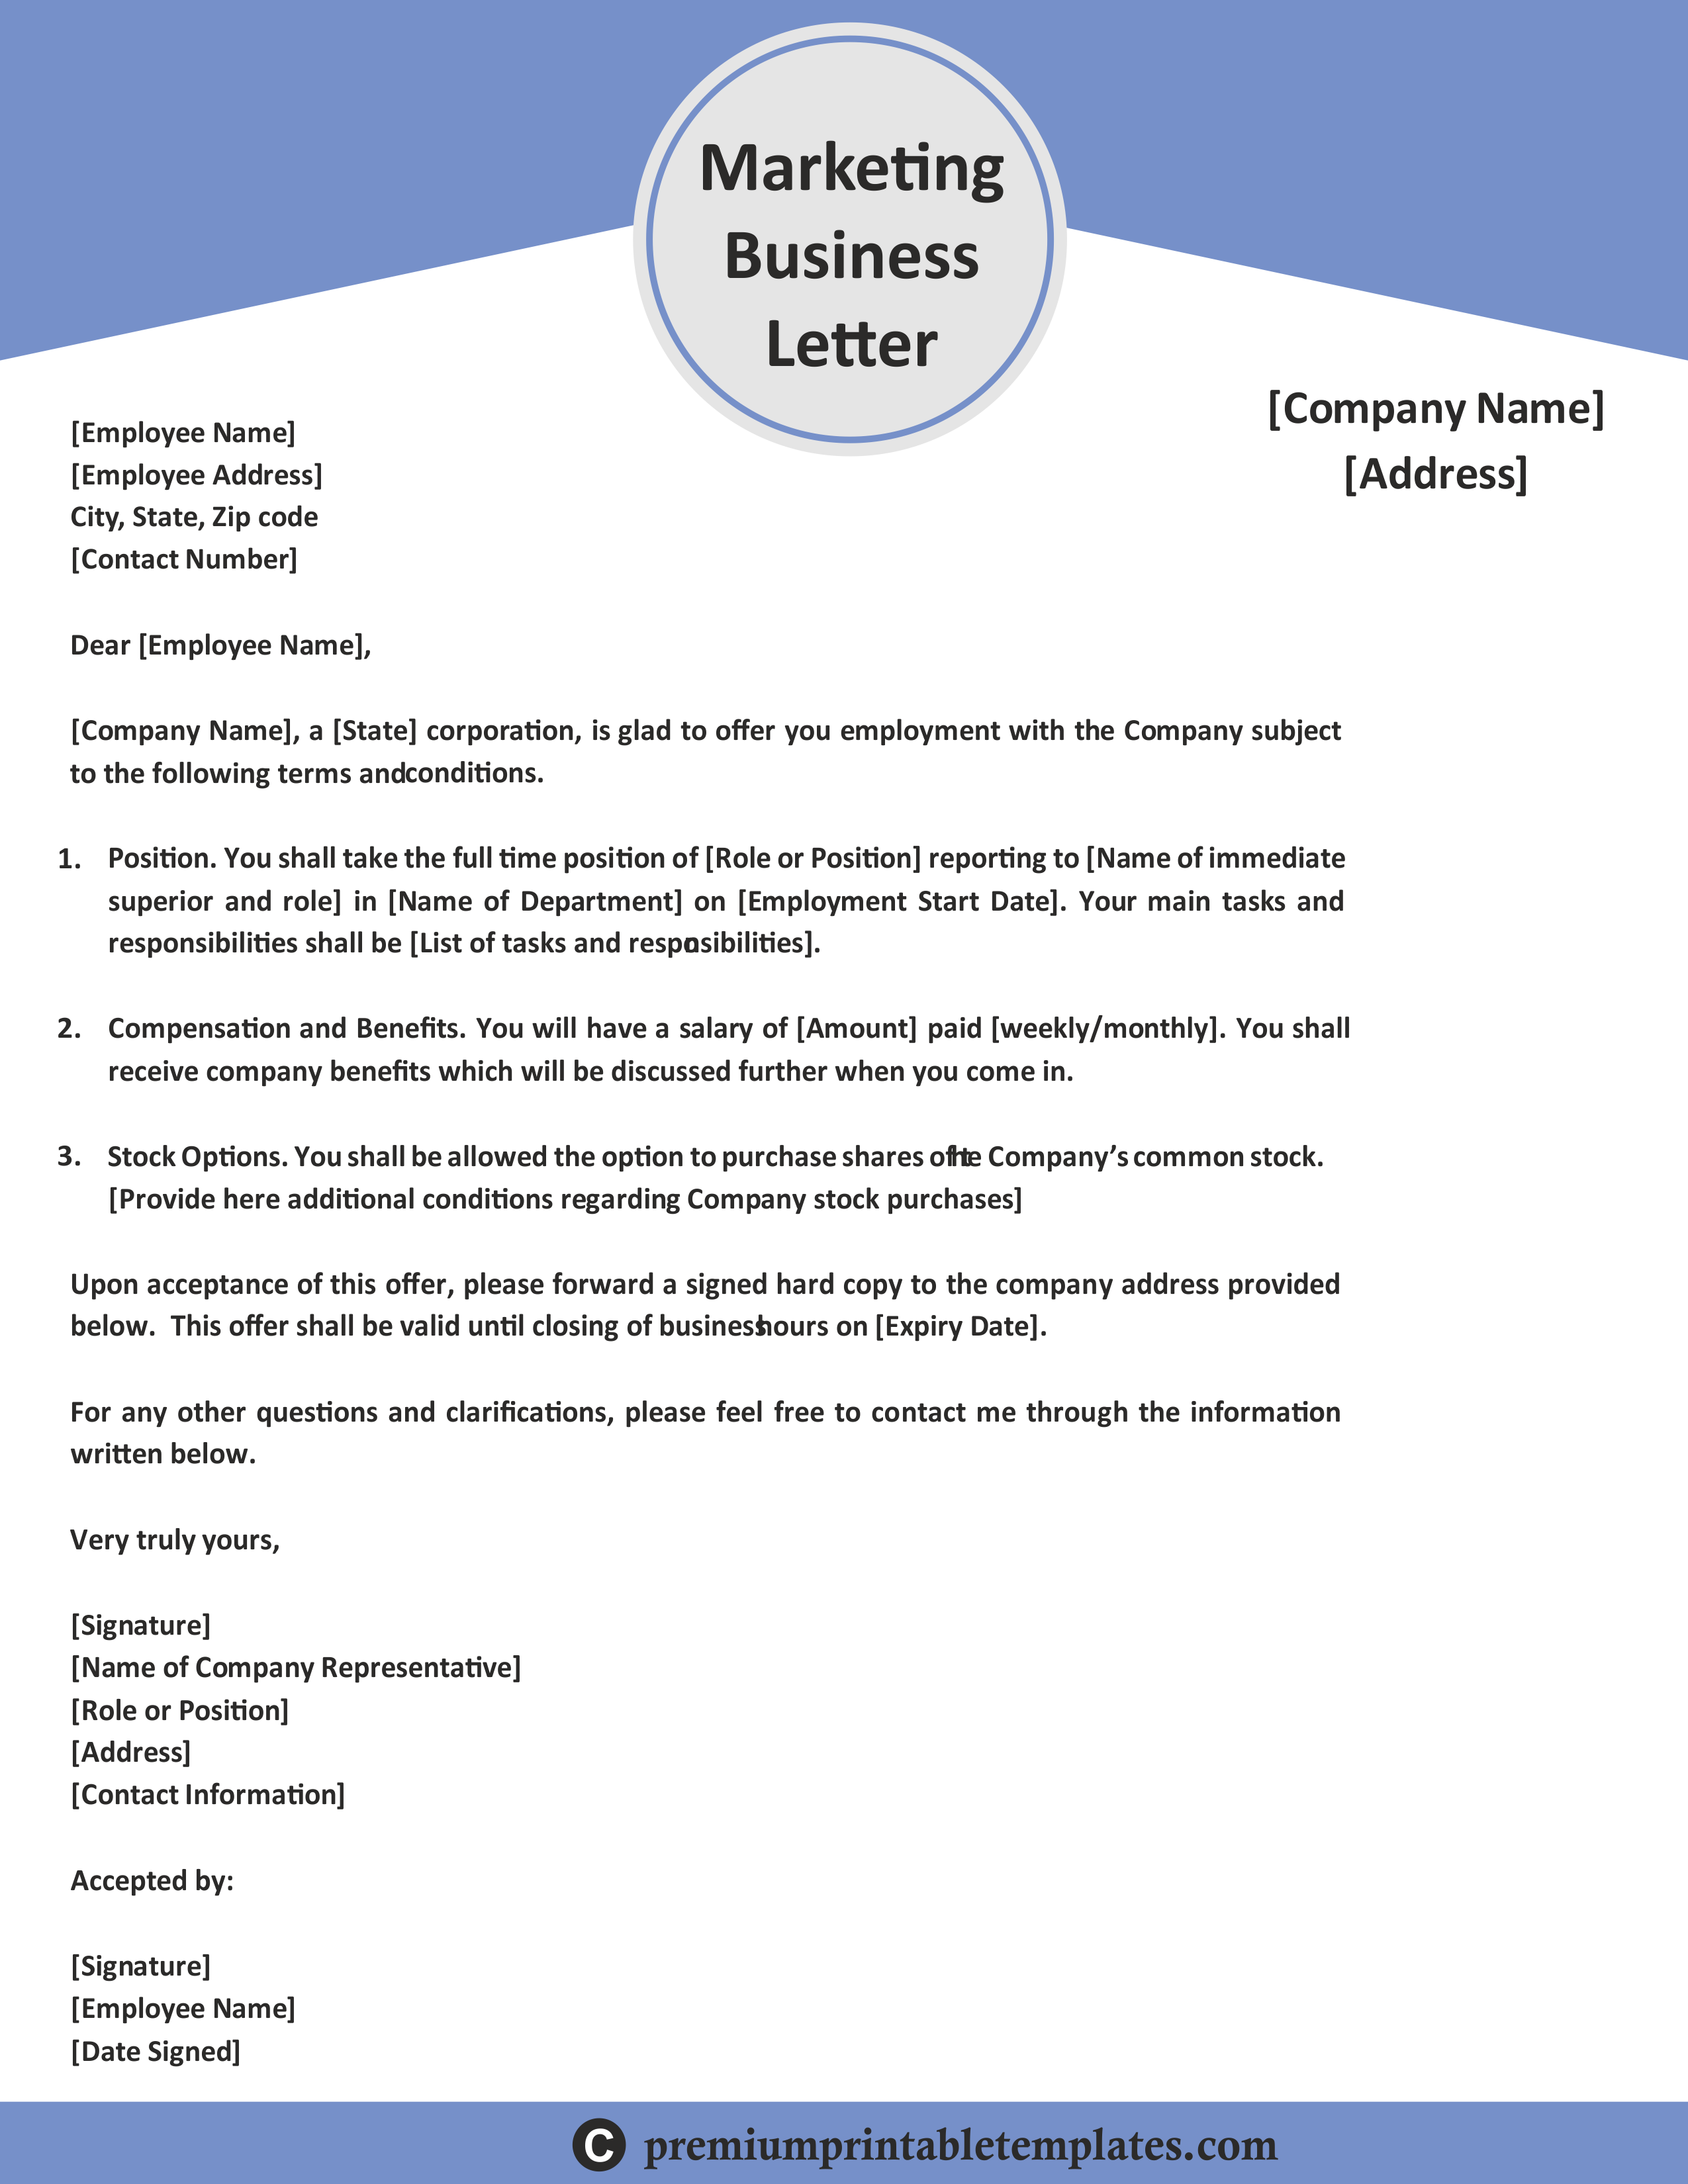 Marketing Business Letter (With images) Business letter